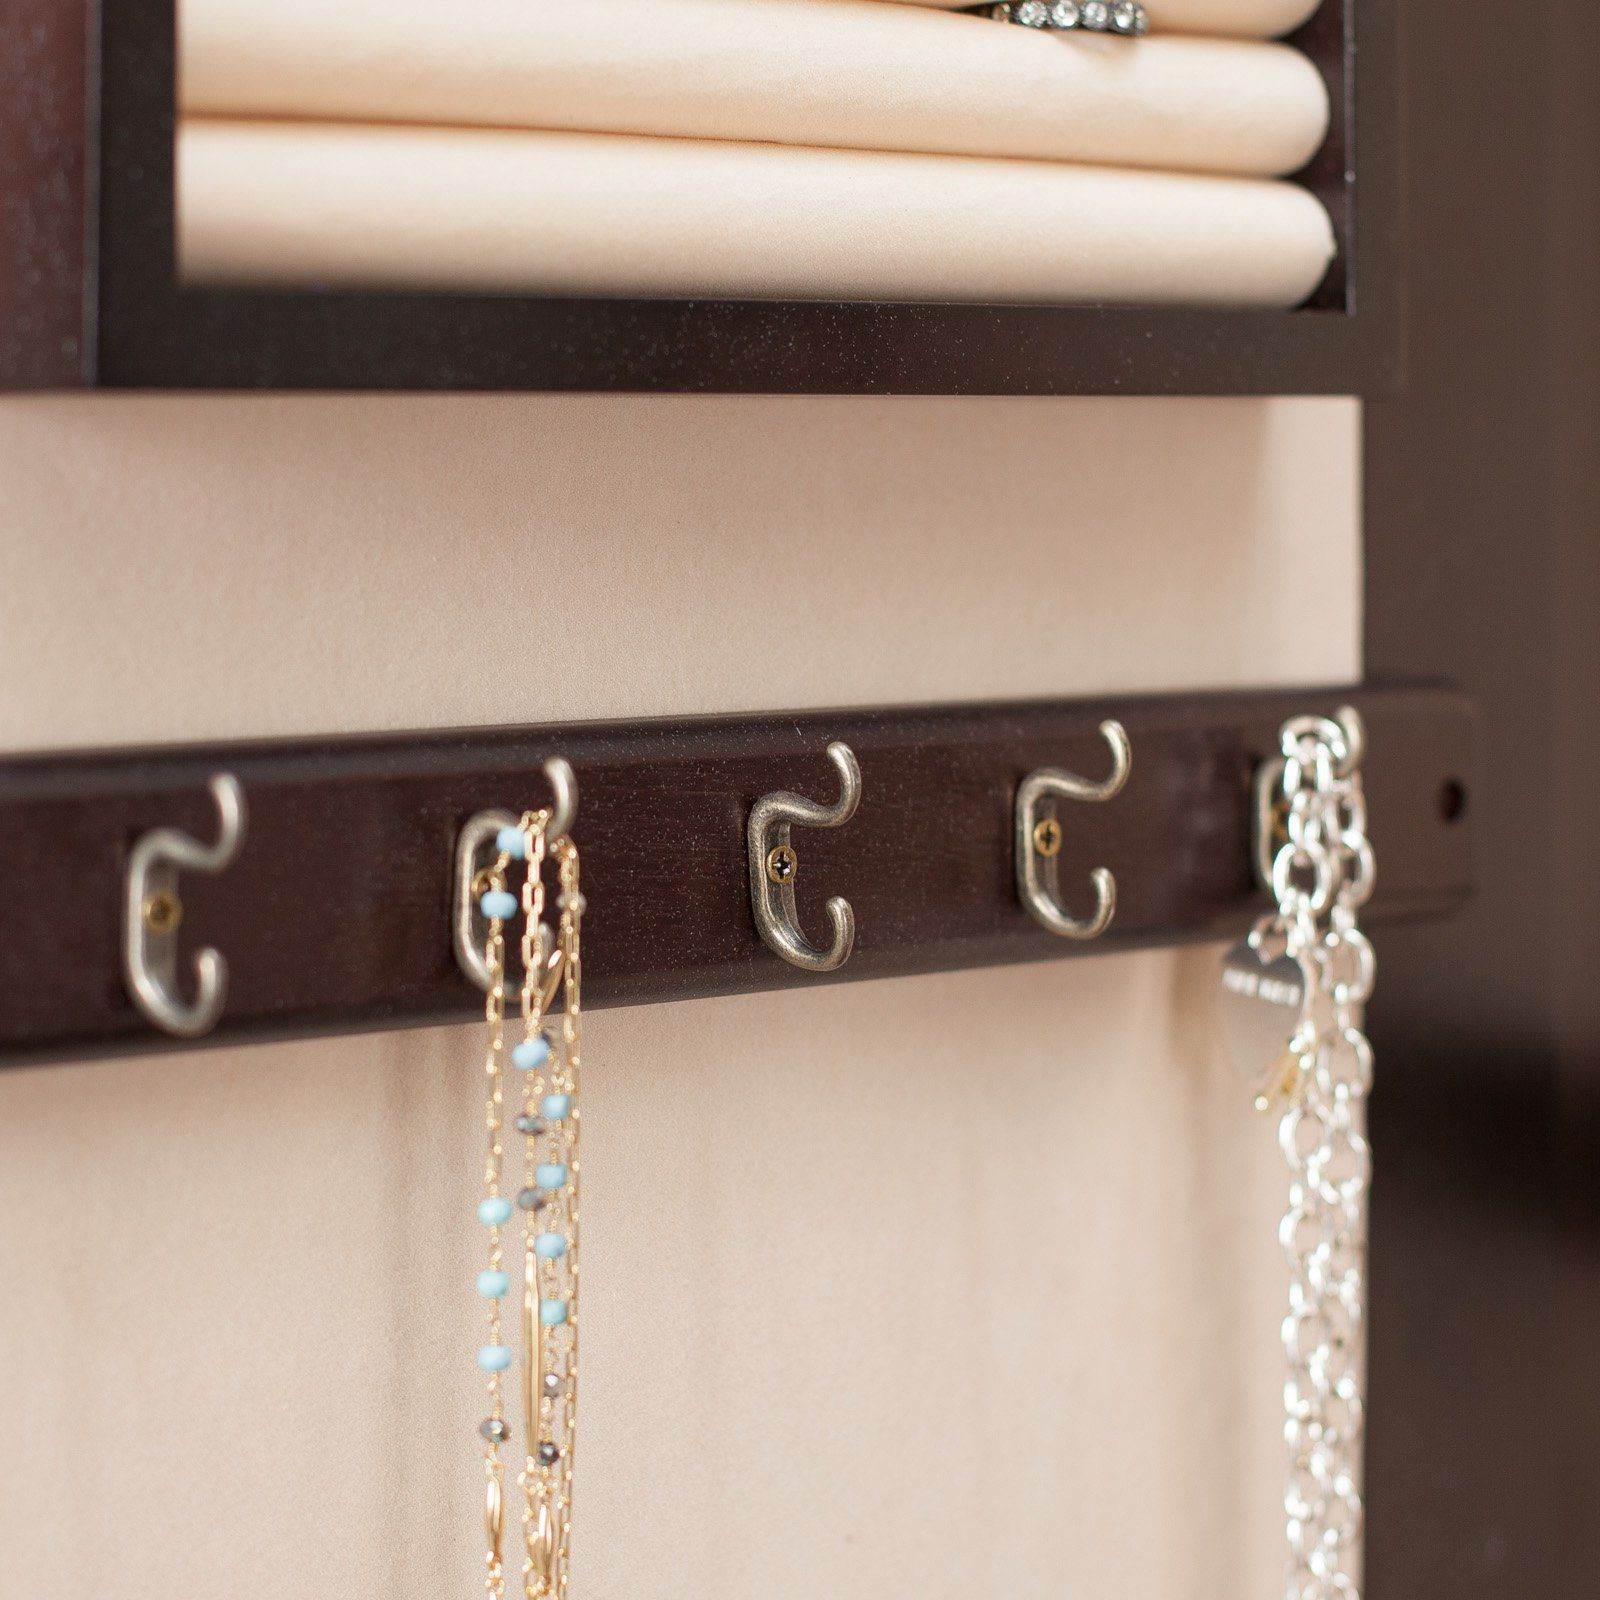 33+ Belham living lighted wall mount locking jewelry armoire ideas in 2021